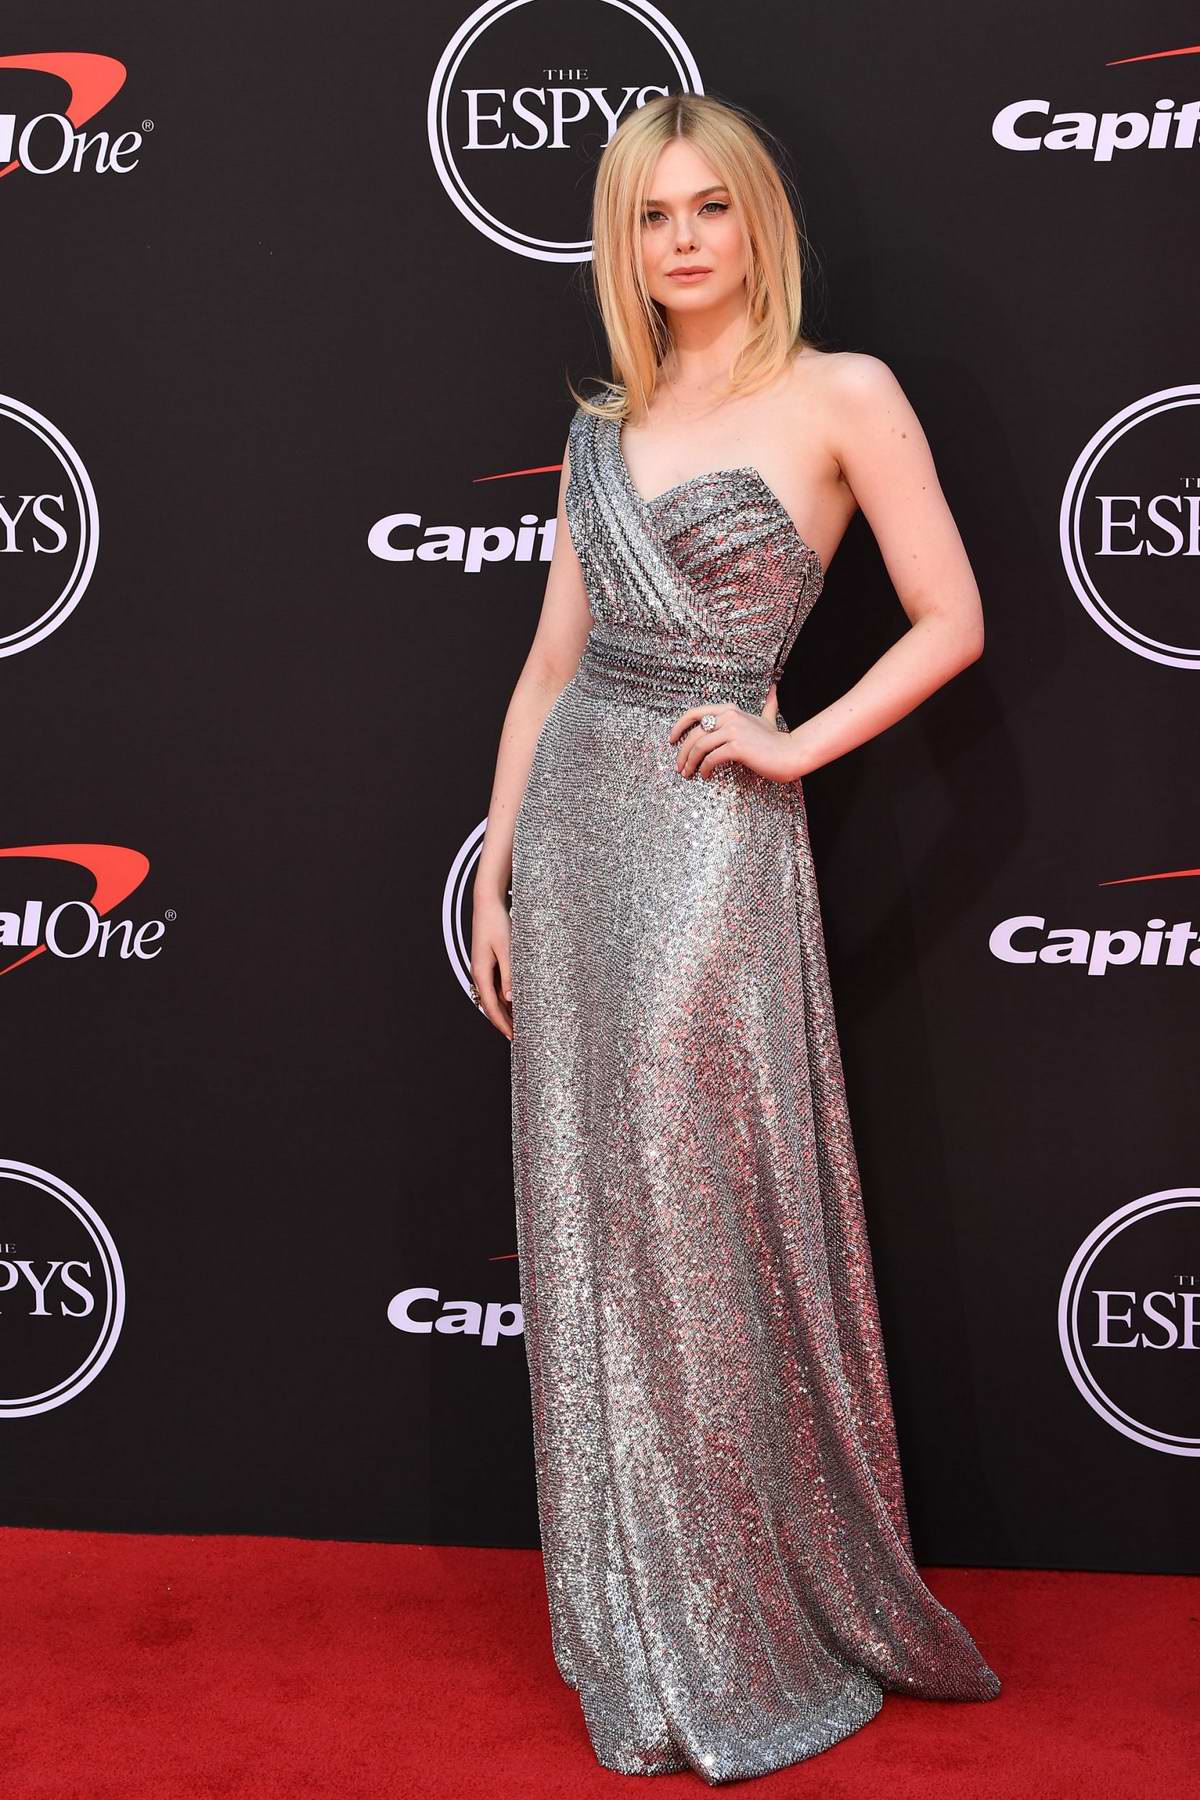 Elle Fanning attends the 2019 ESPY Awards at the Microsoft Theatre in Los Angeles